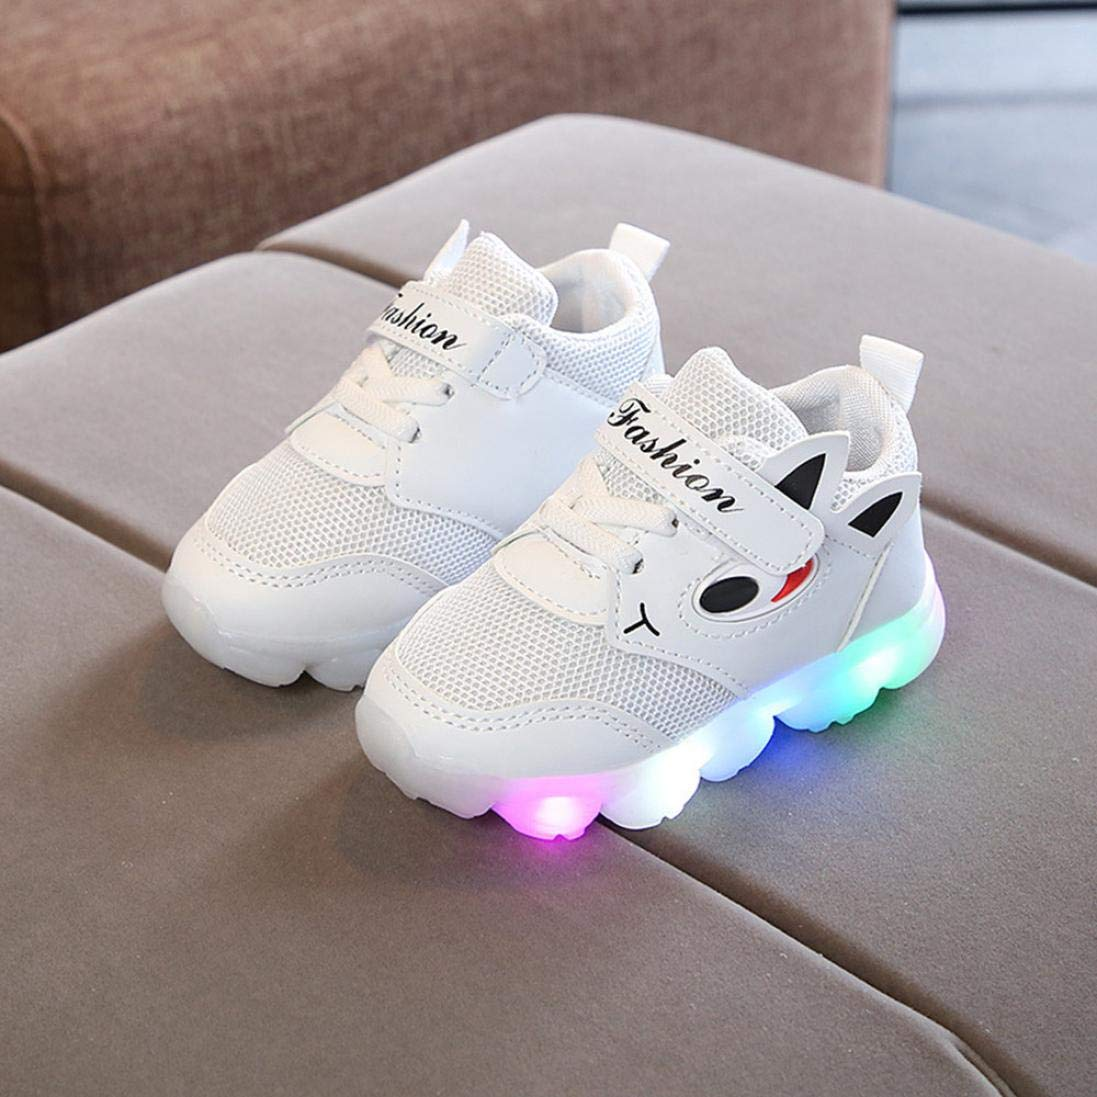 Zerototens Kids Led Shoes,1-6 Years Old Toddler Infant Baby Mesh Cartoon Eye Boots Sneakers Light up Luminous Shoes Soft Bottom Anti Slip Outdoor Athic Shoes Sport Running Shoes